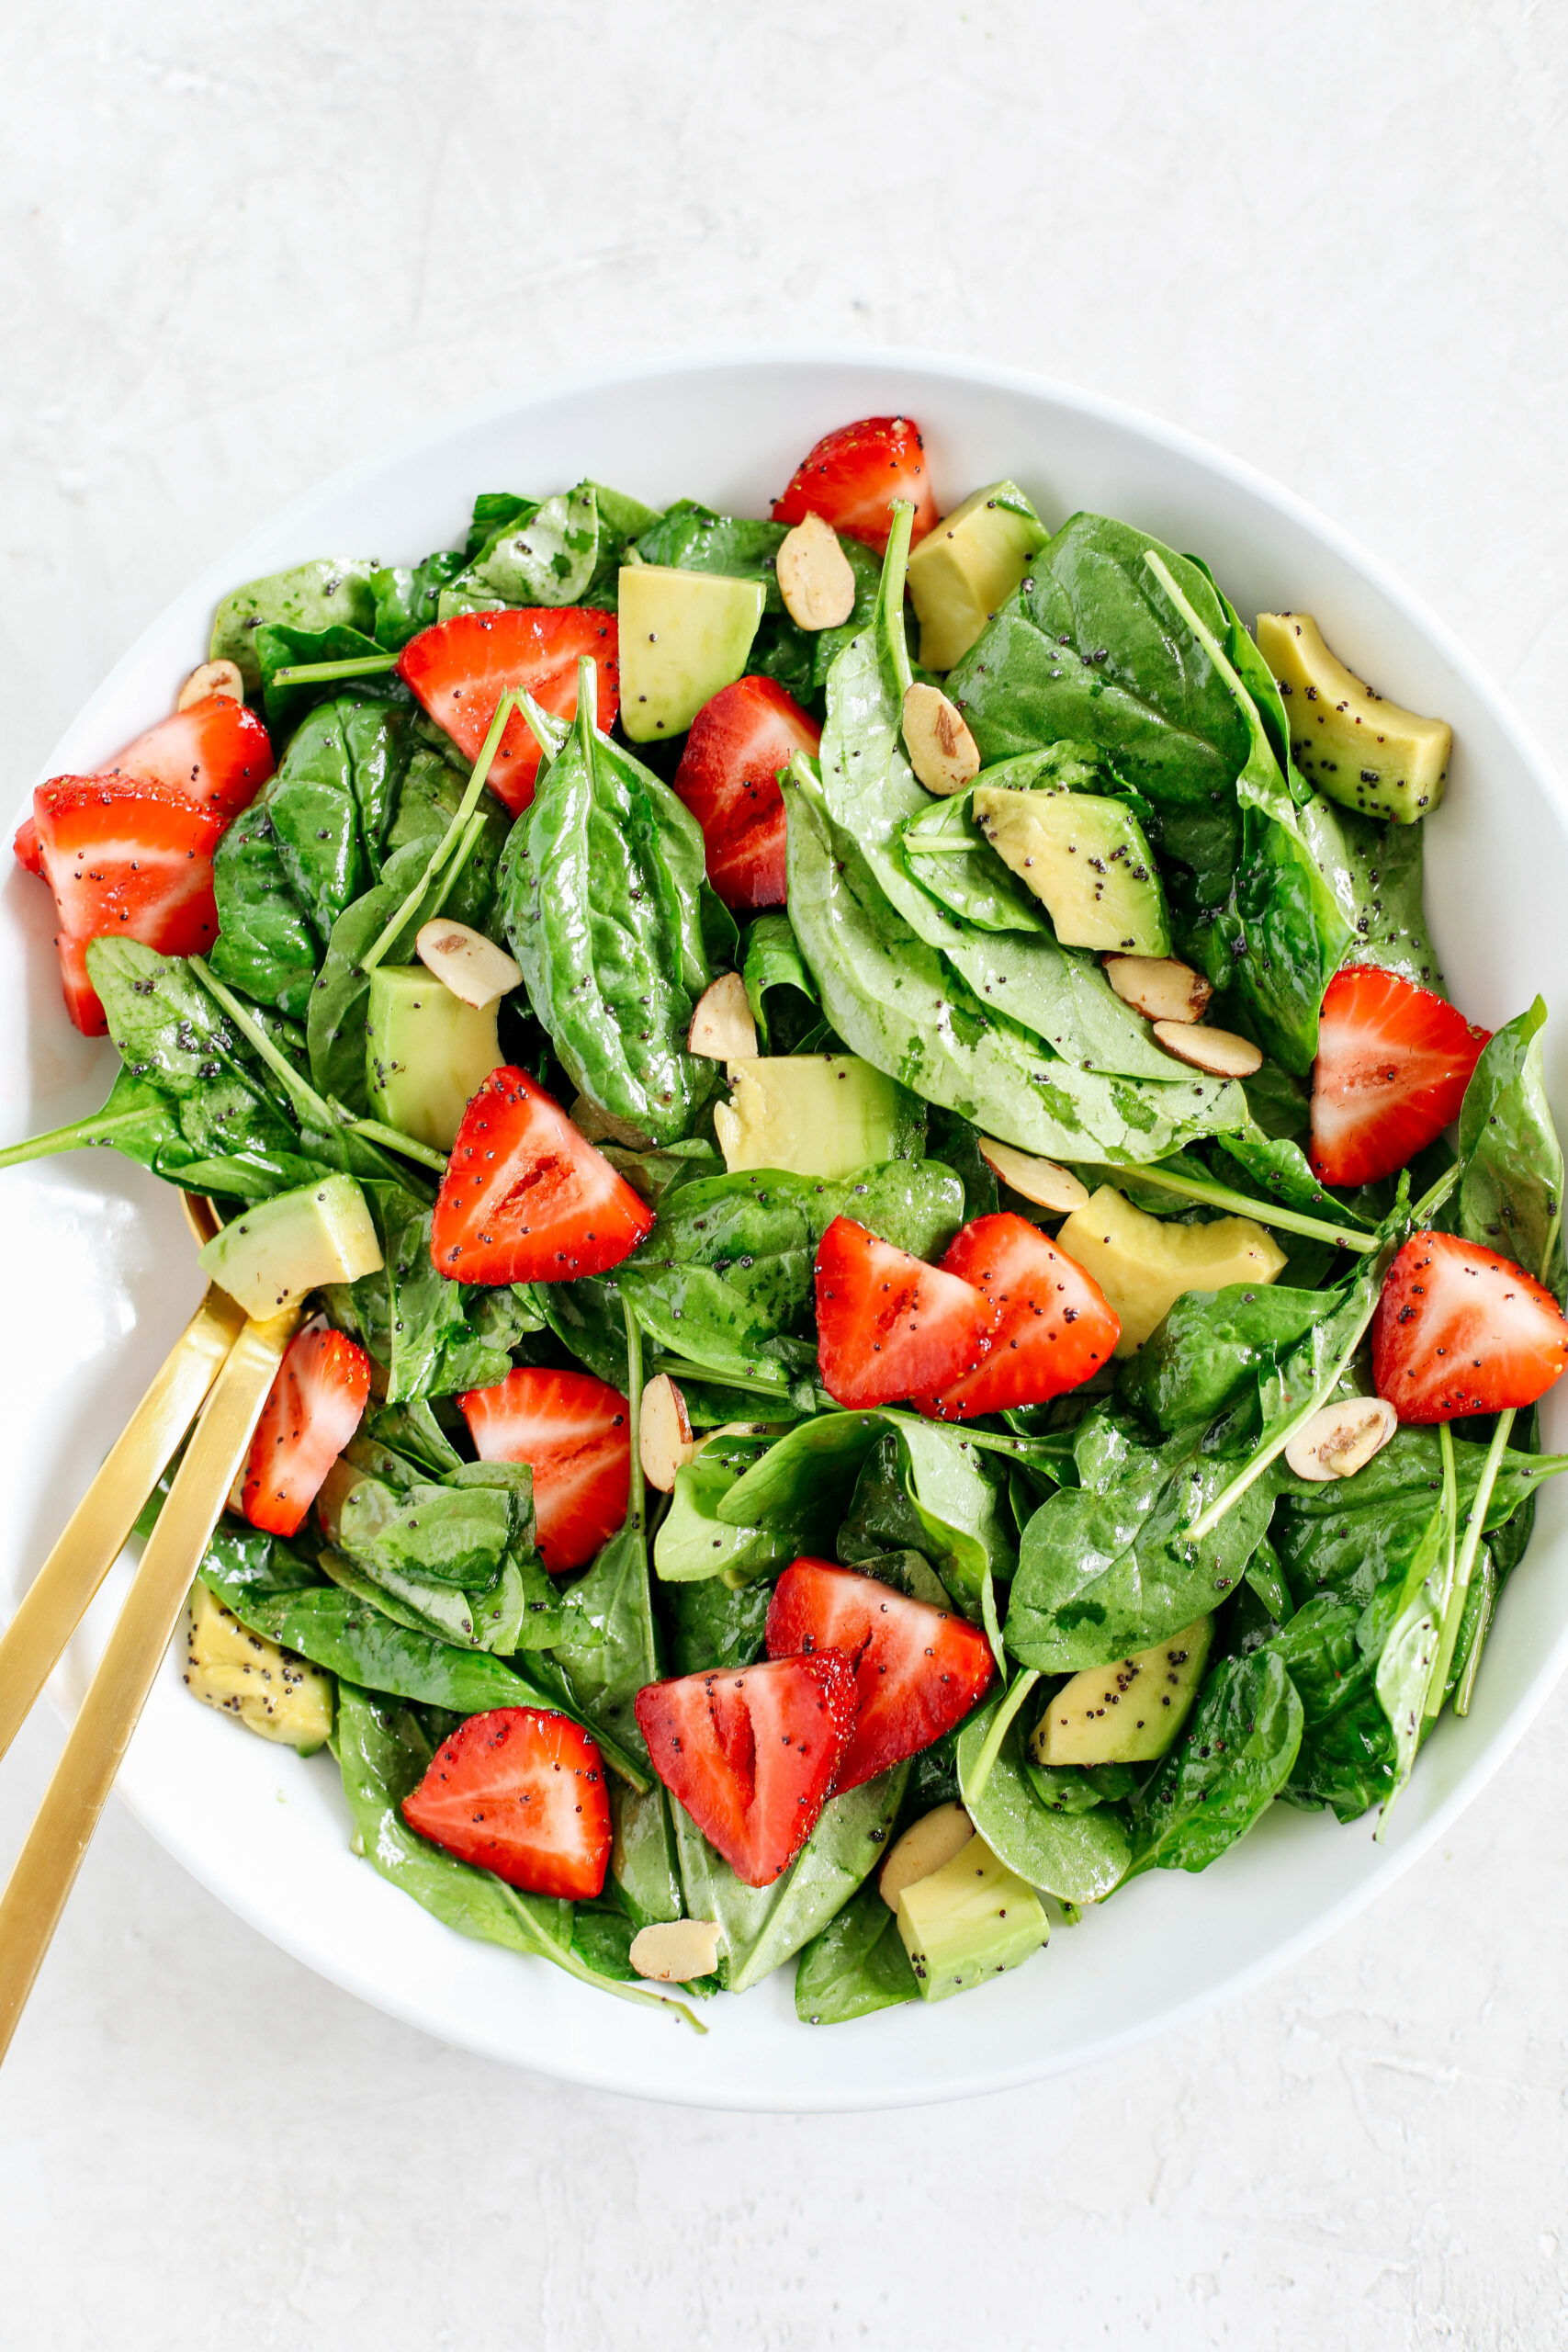 Super simple Strawberry Spinach Salad with Poppy Seed Dressing that is healthy, delicious and the perfect summer staple!